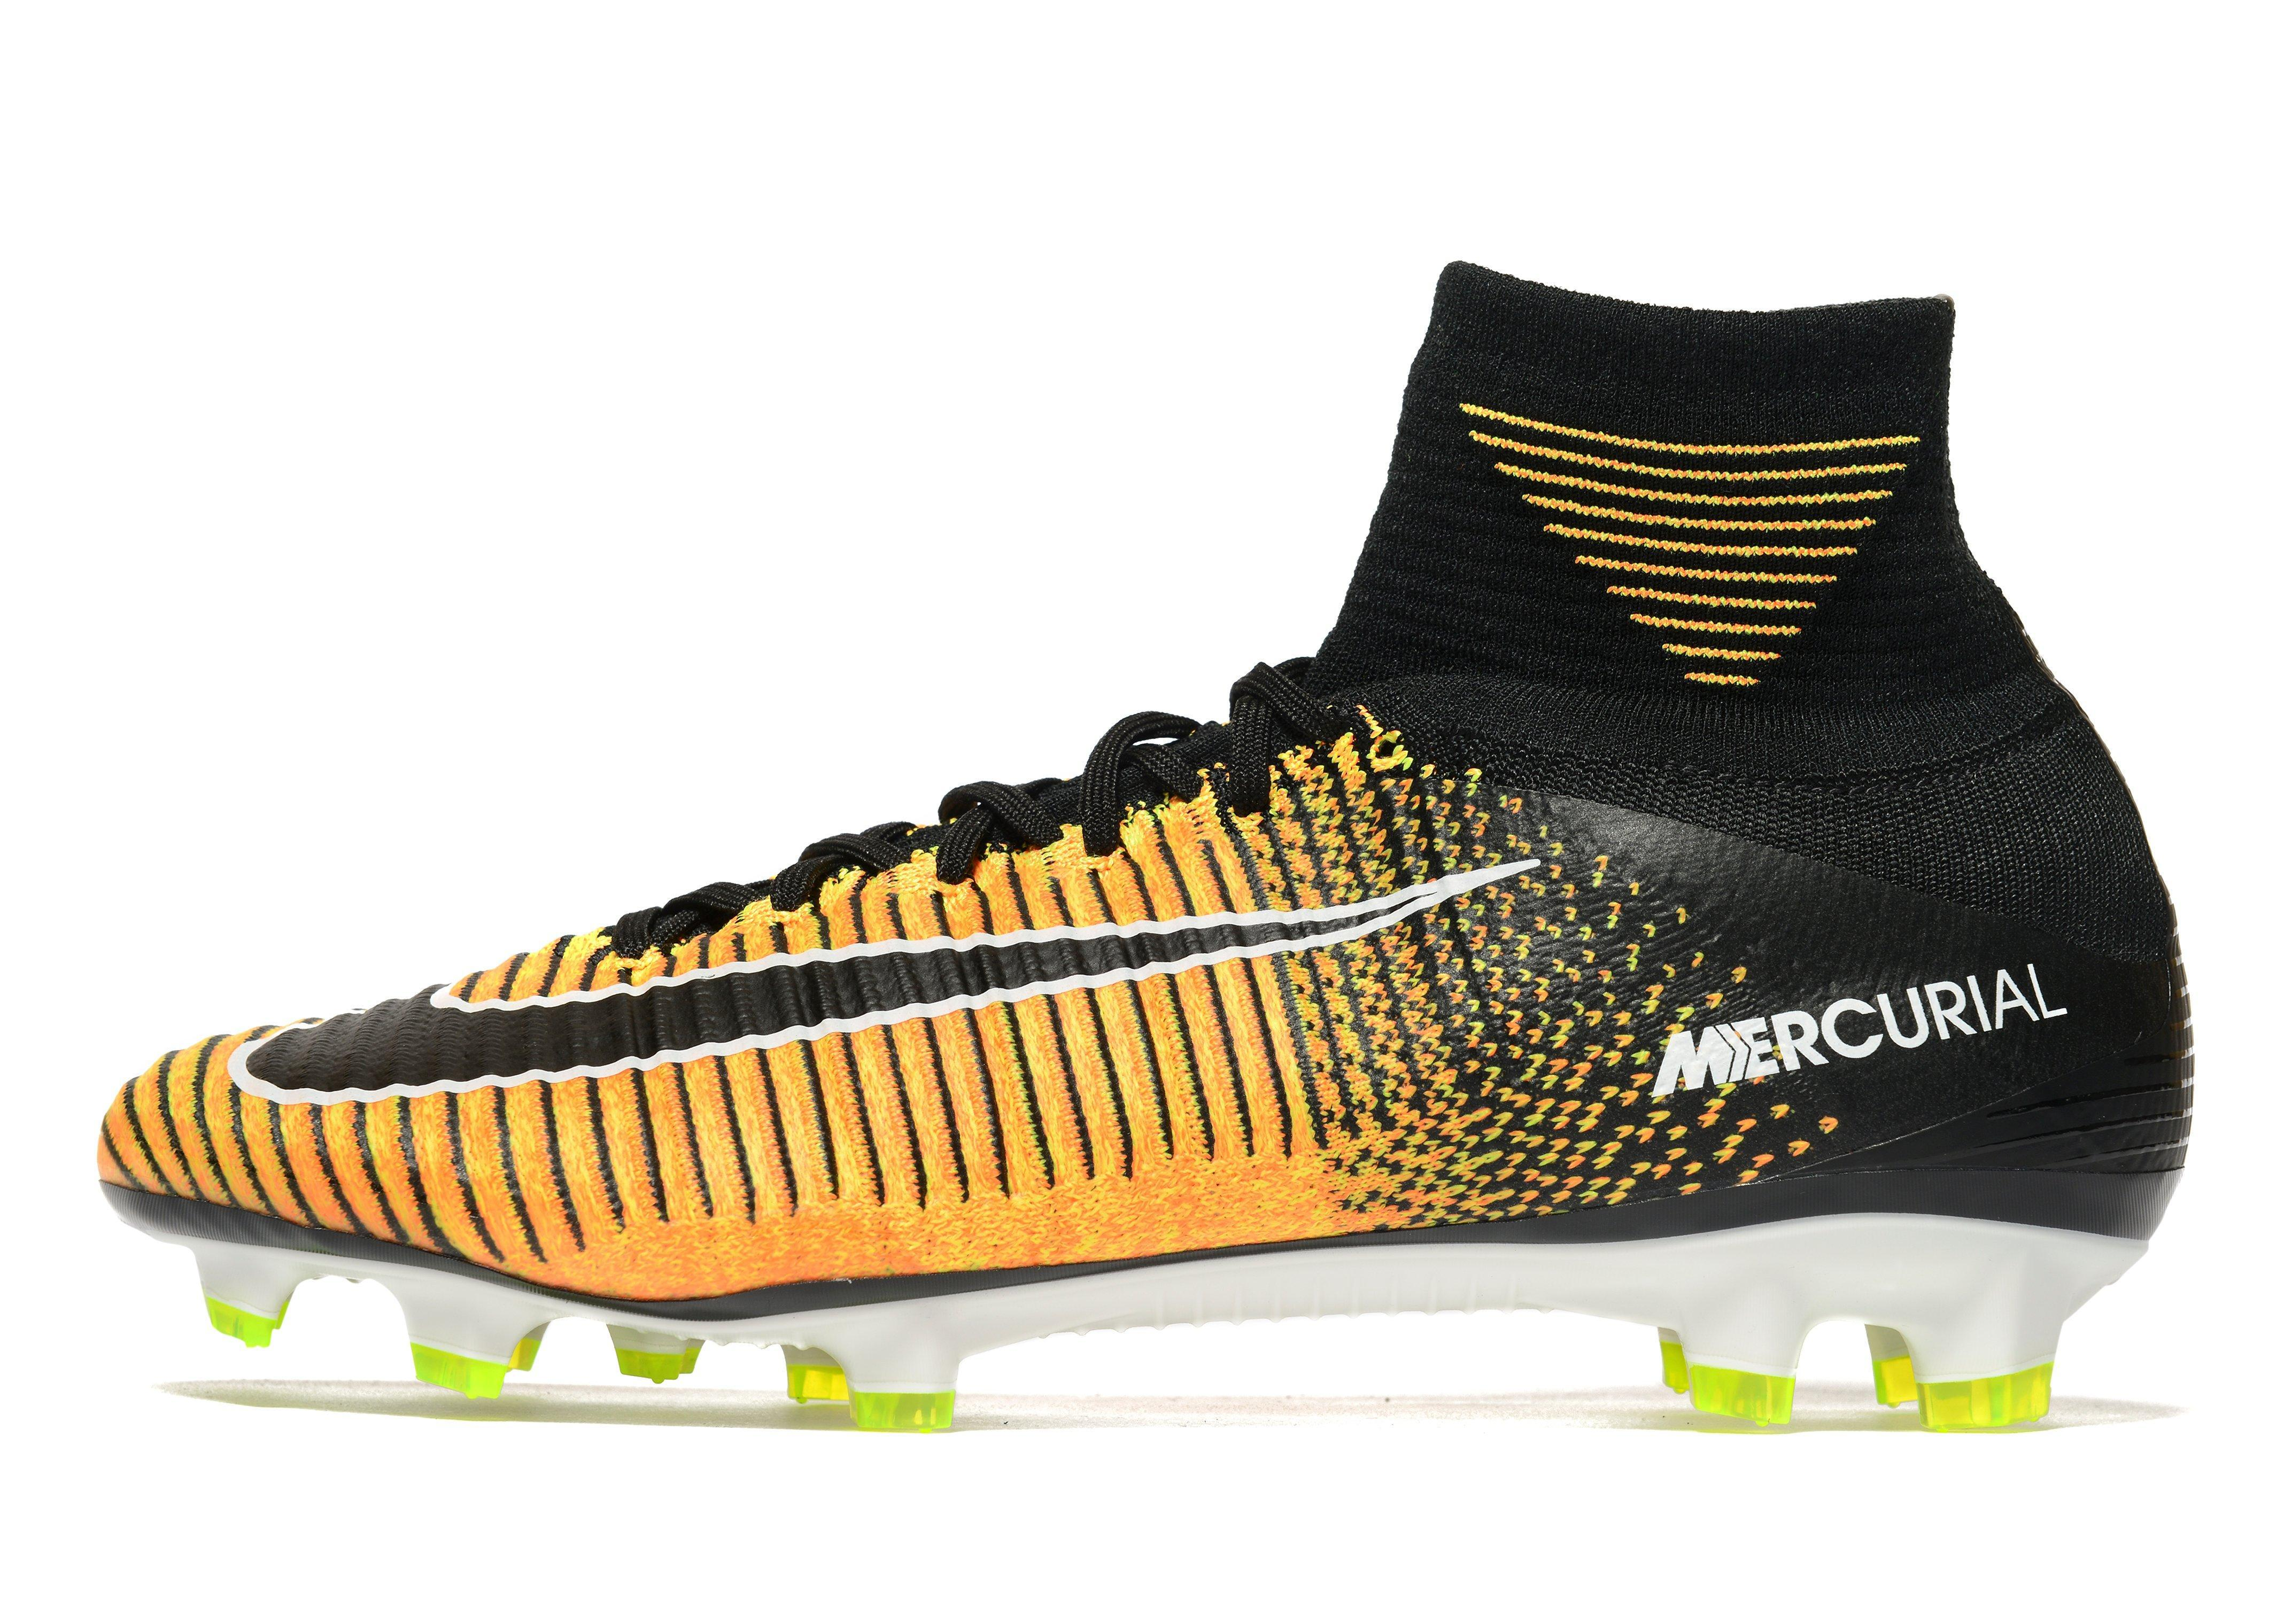 hot sale online 95bed 8715a Nike Mercurial 360 Superfly FG Gallery. Previously sold at JD Sports ...